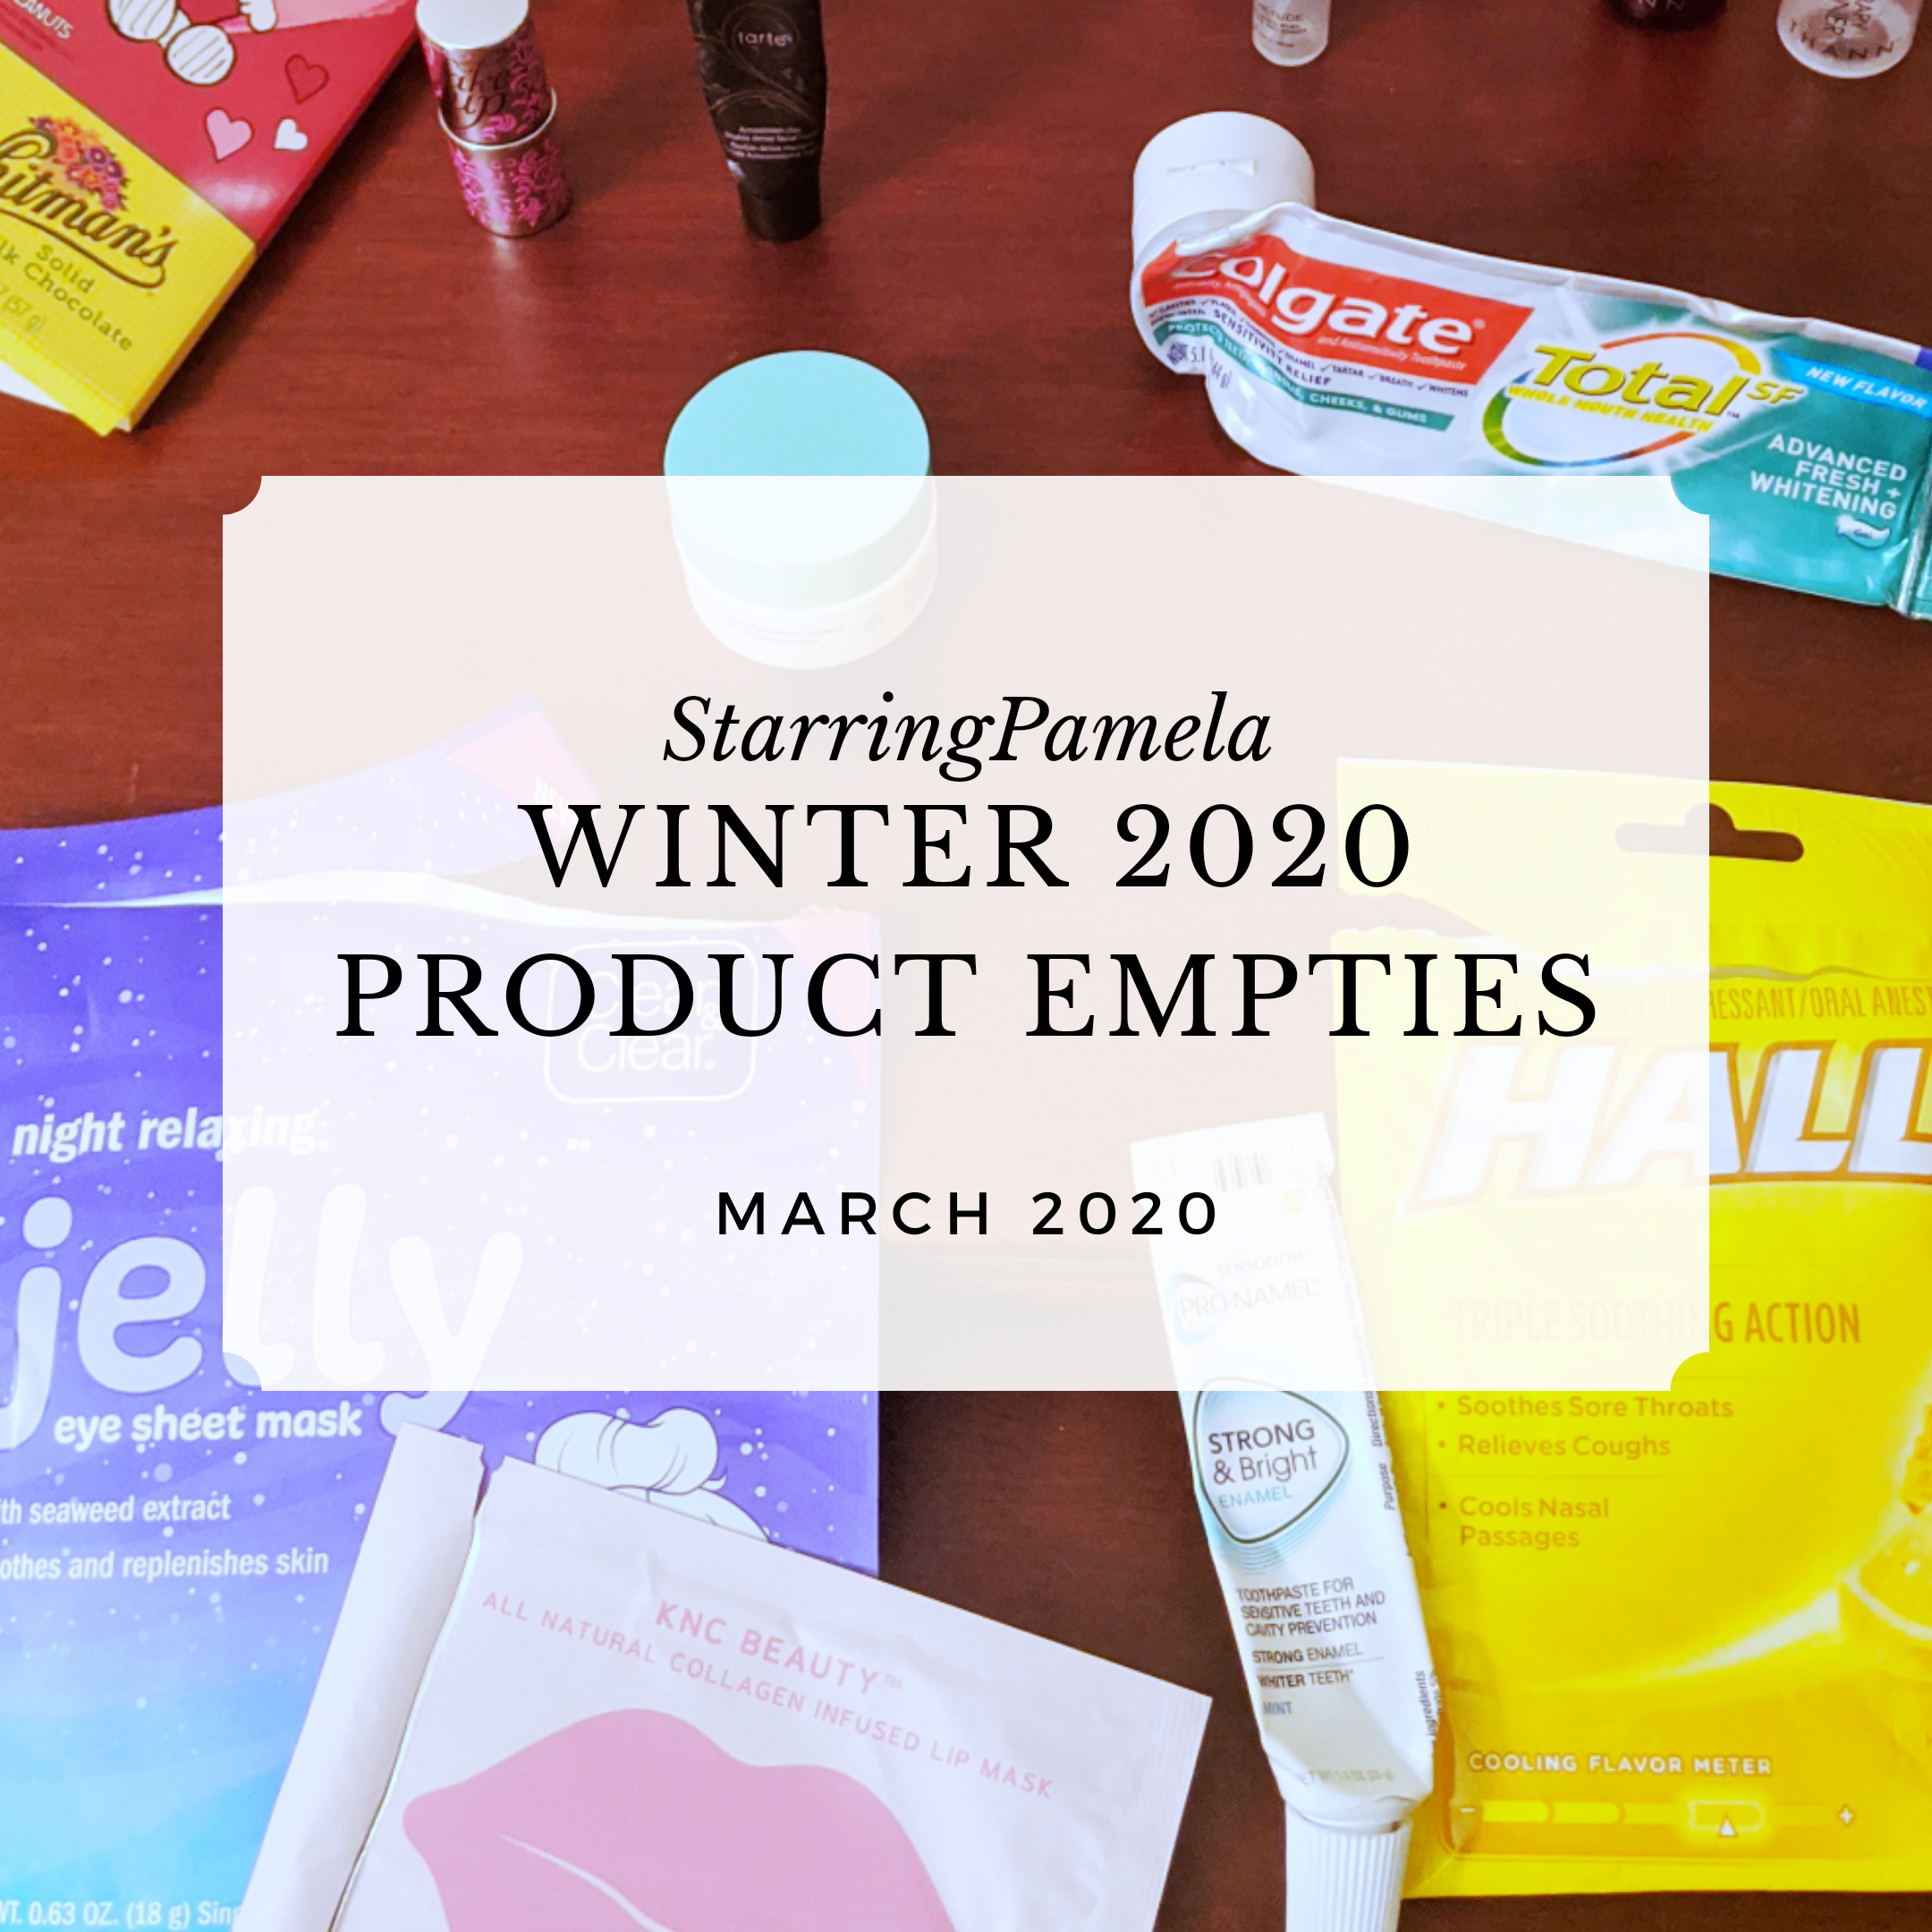 winter 2020 product empties featured image